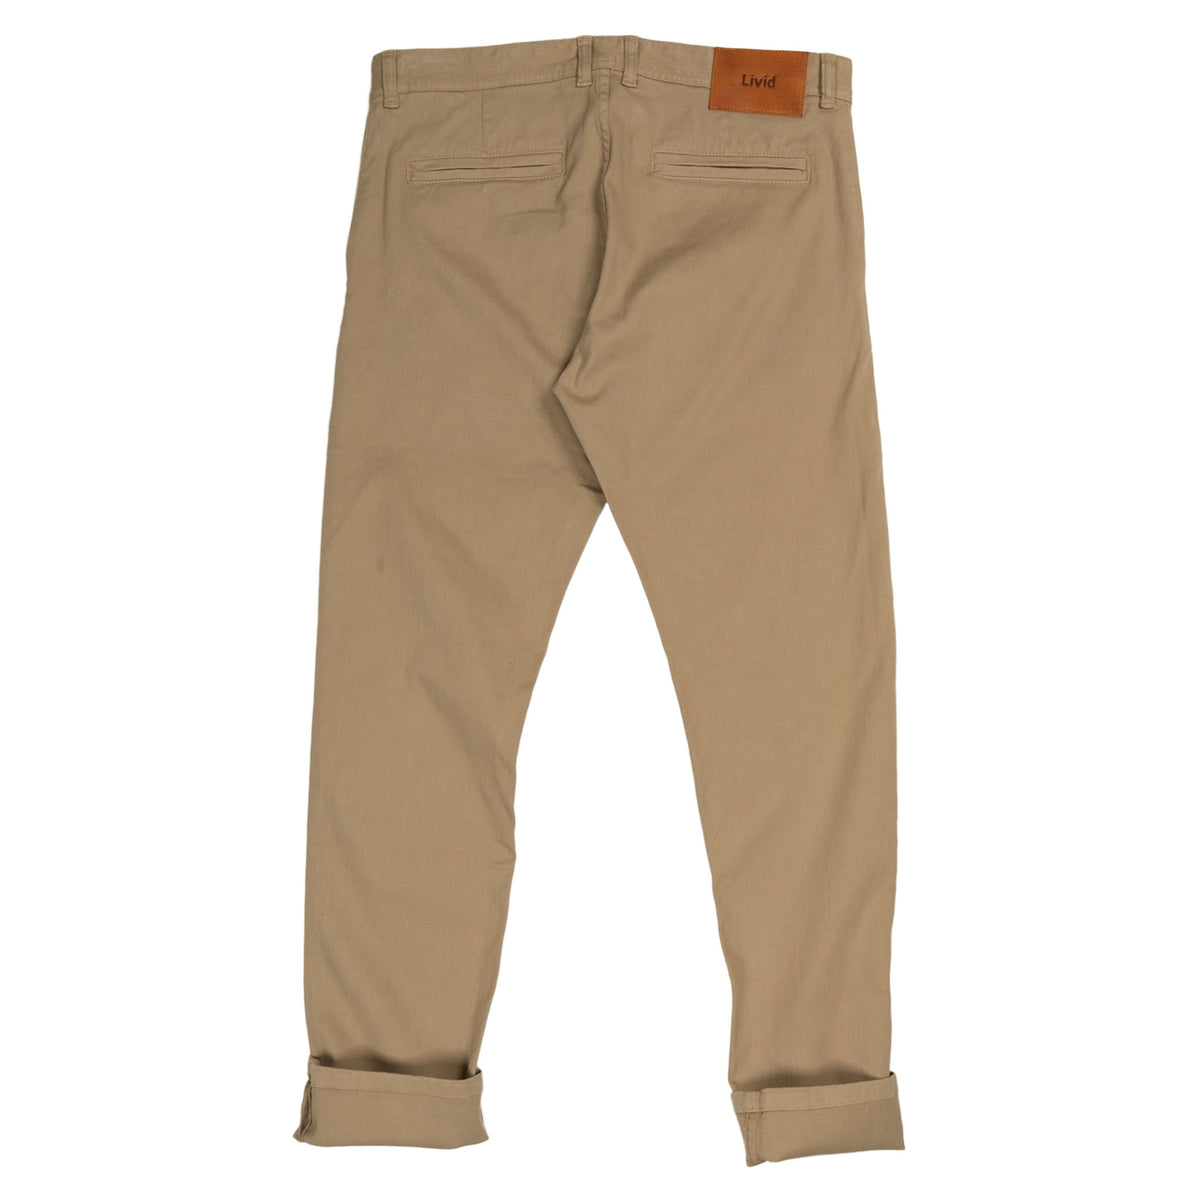 Jone Japan Beige Trousers